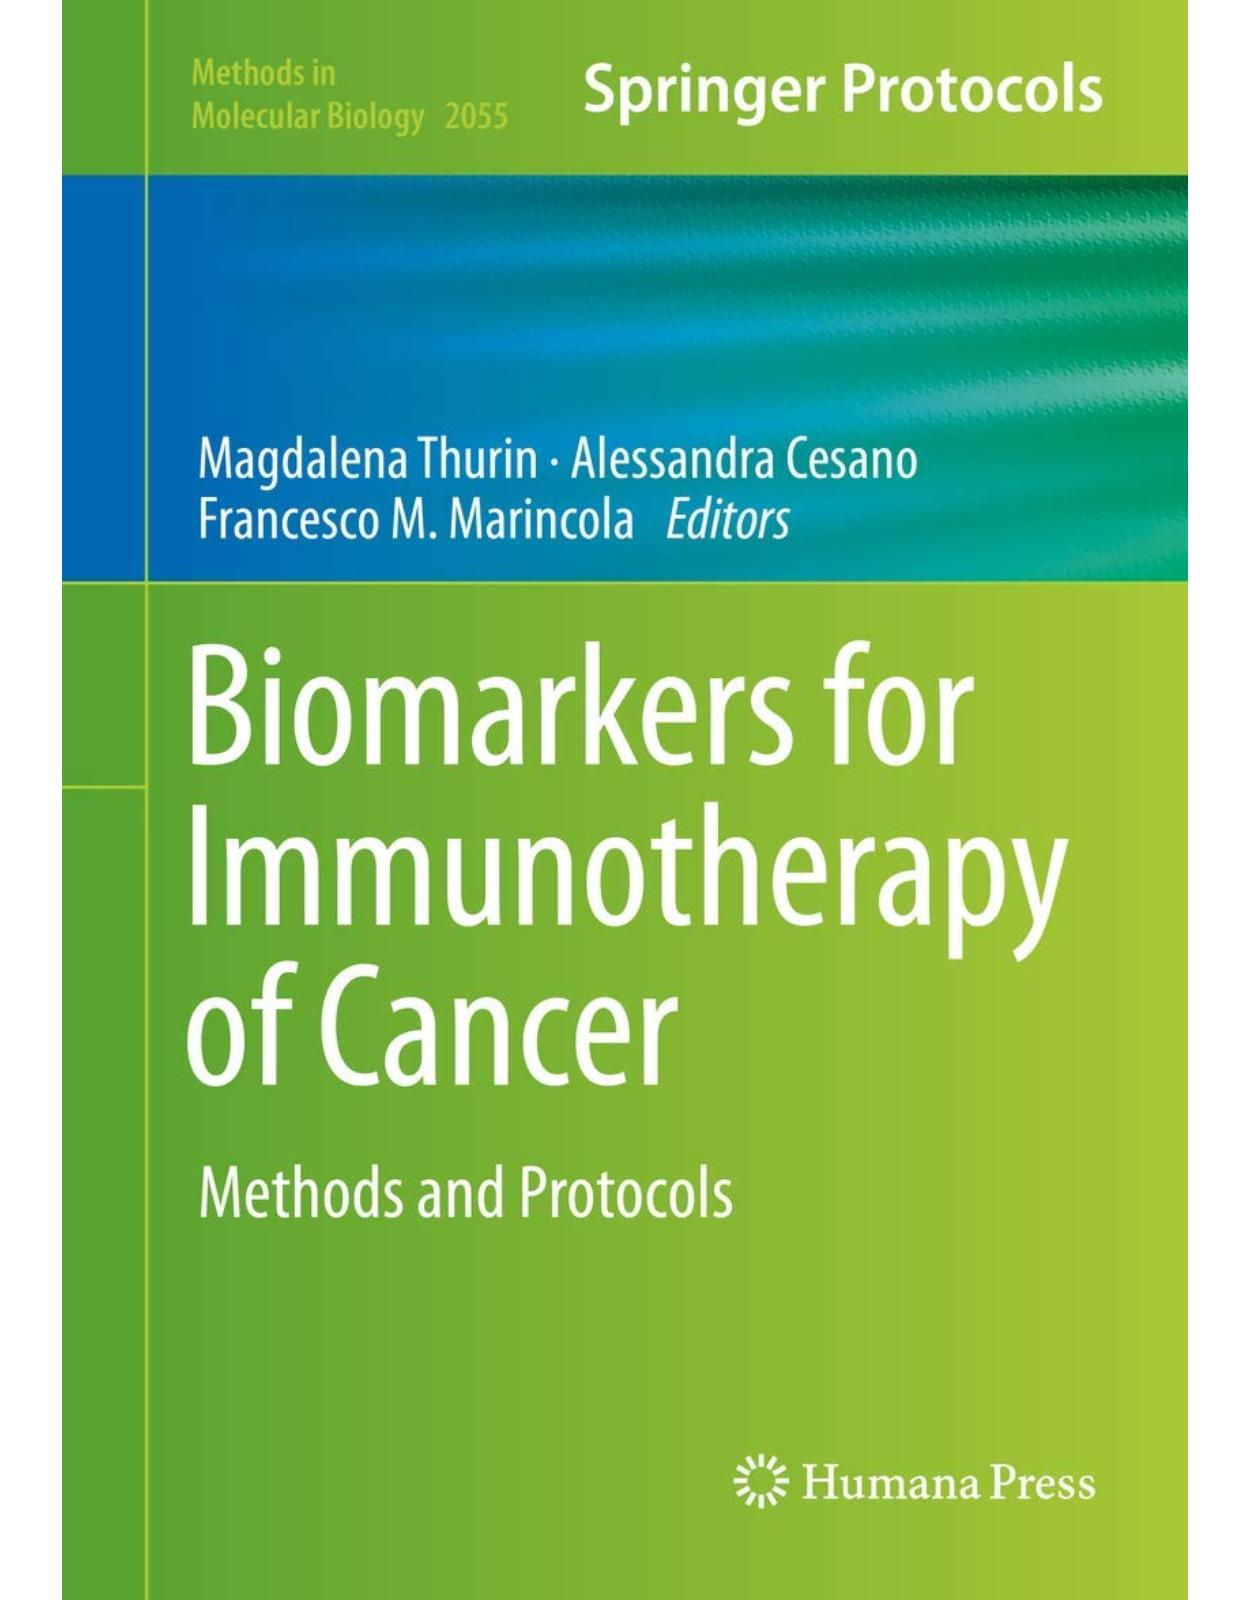 Biomarkers for Immunotherapy of Cancer